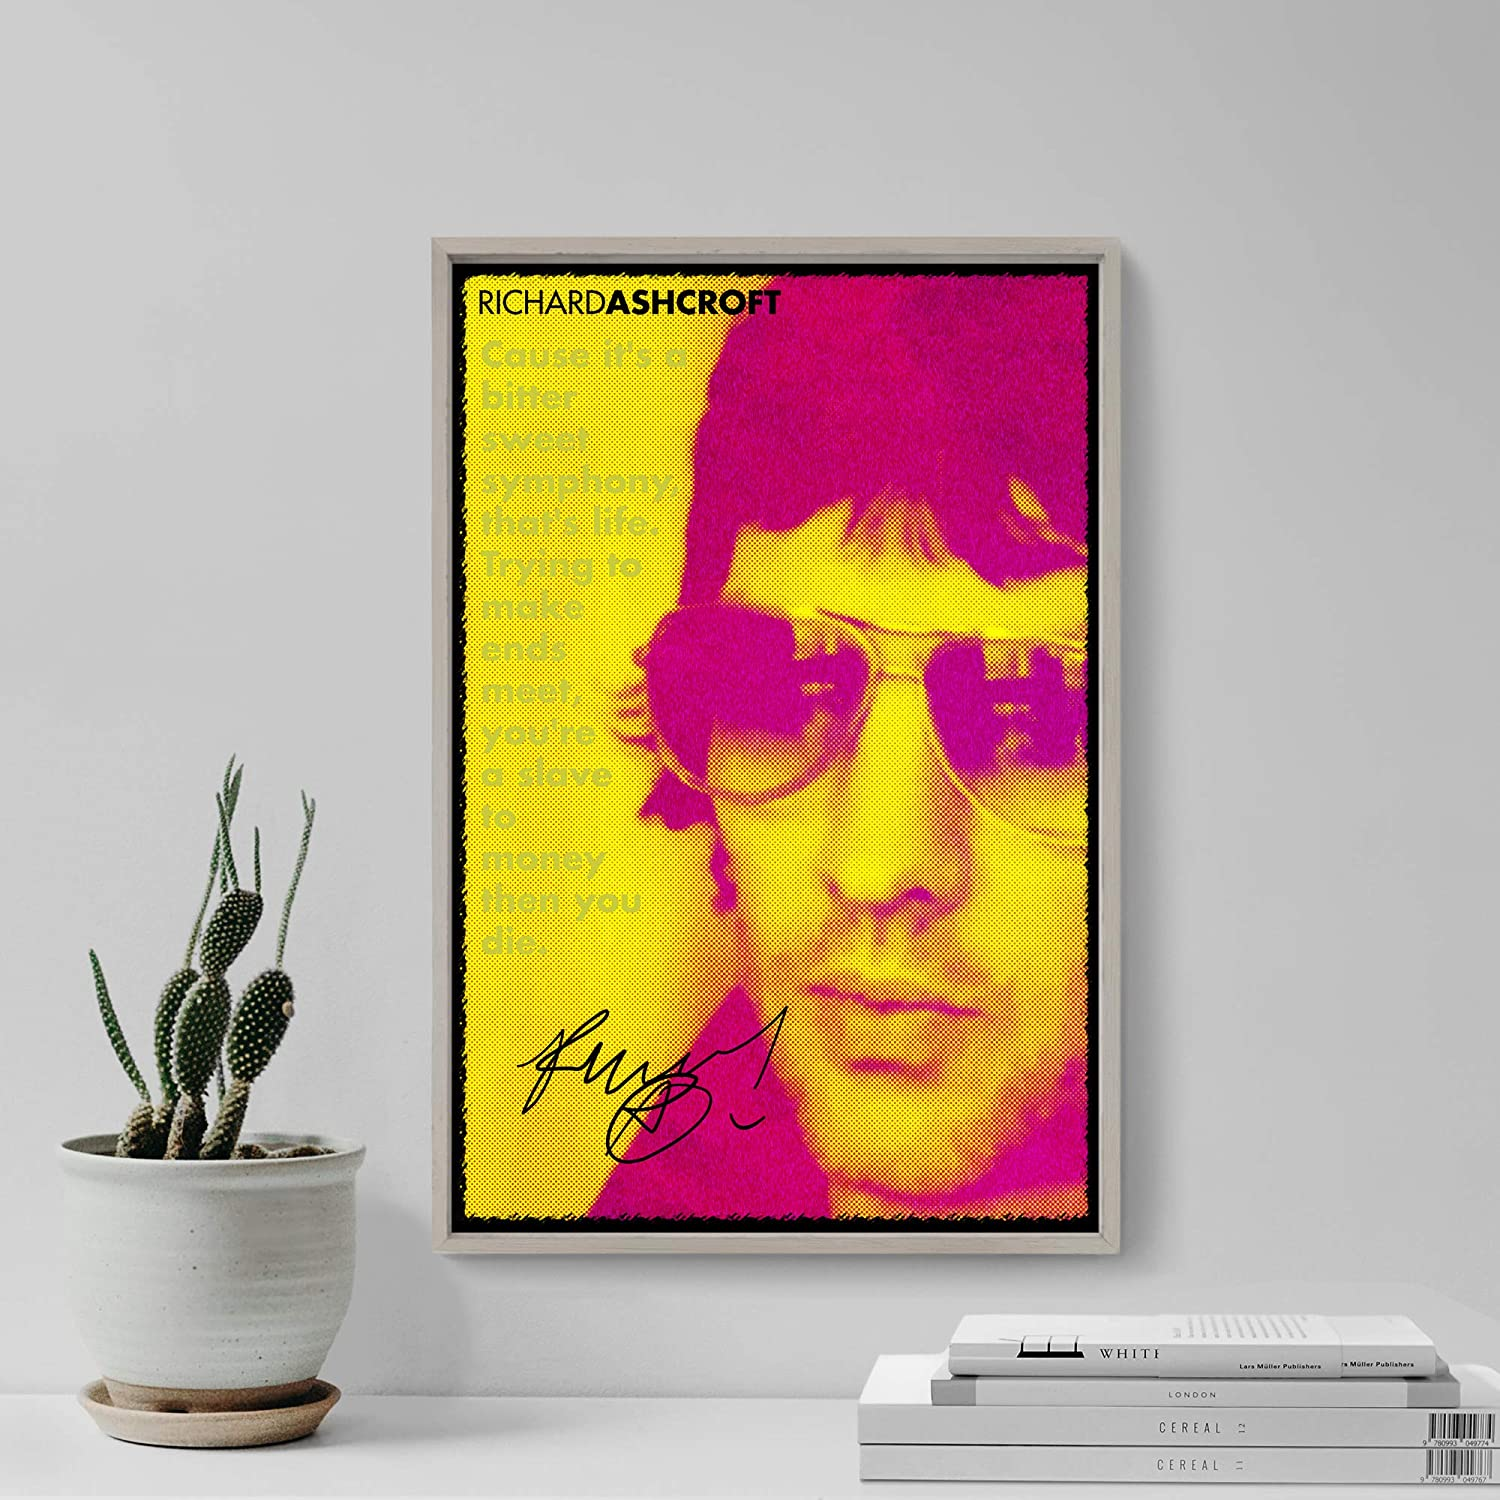 Rara Stampa Artistica Idea Regalo 45 x 30 cm Cartellone The Pop Culture King Richard Ashcroft: Poster Fotografico con Replica di Autografo